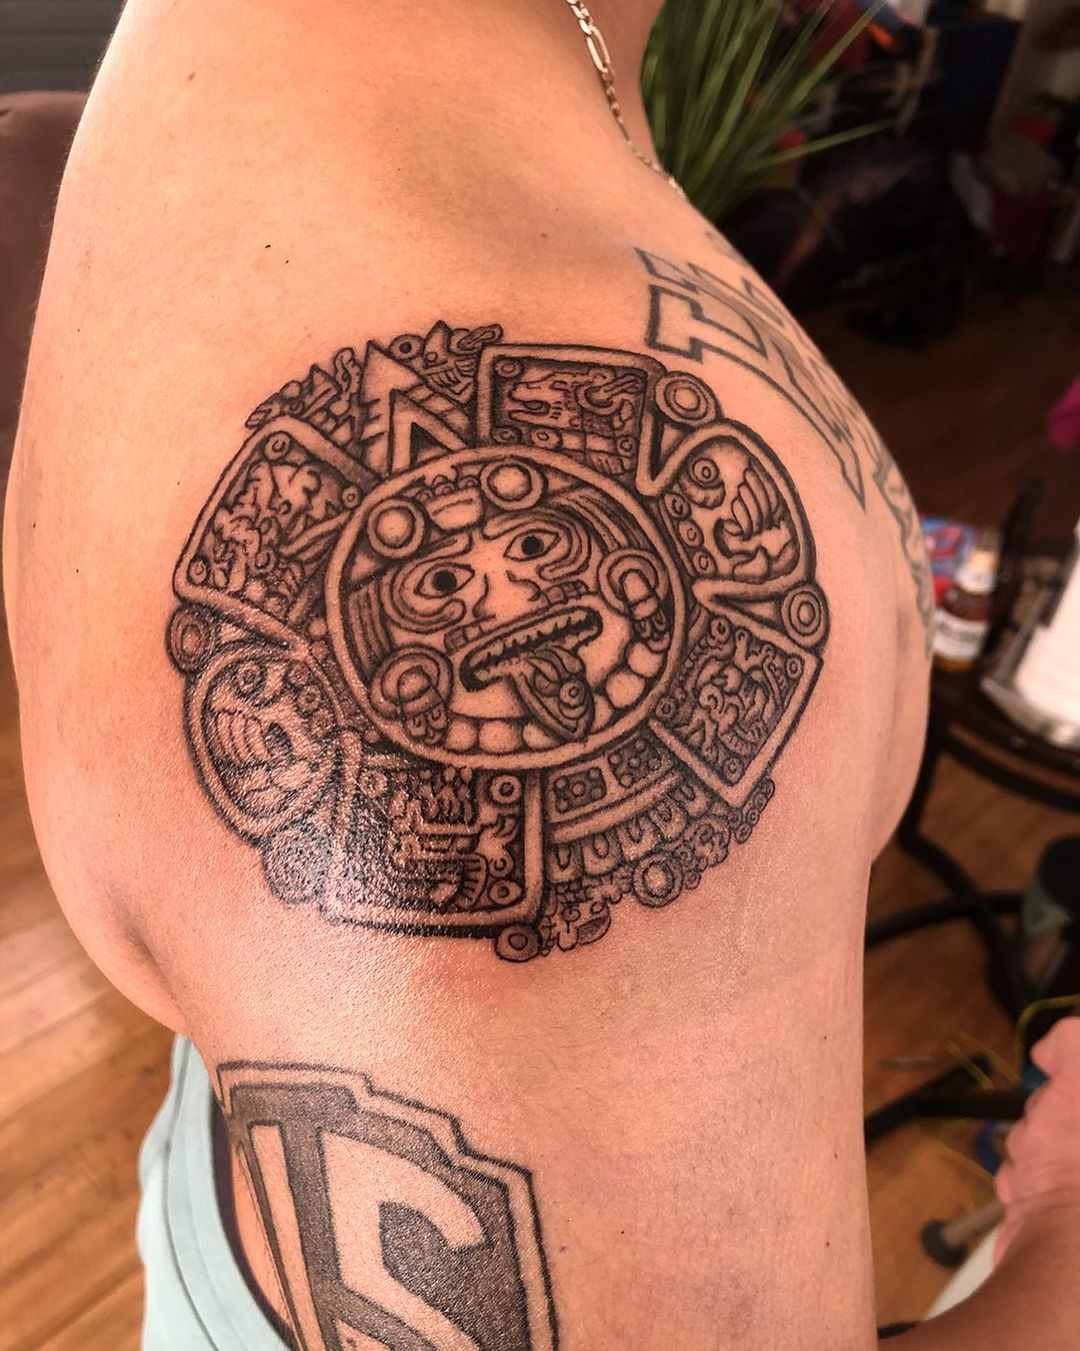 Image of magestic Mayan tattoo